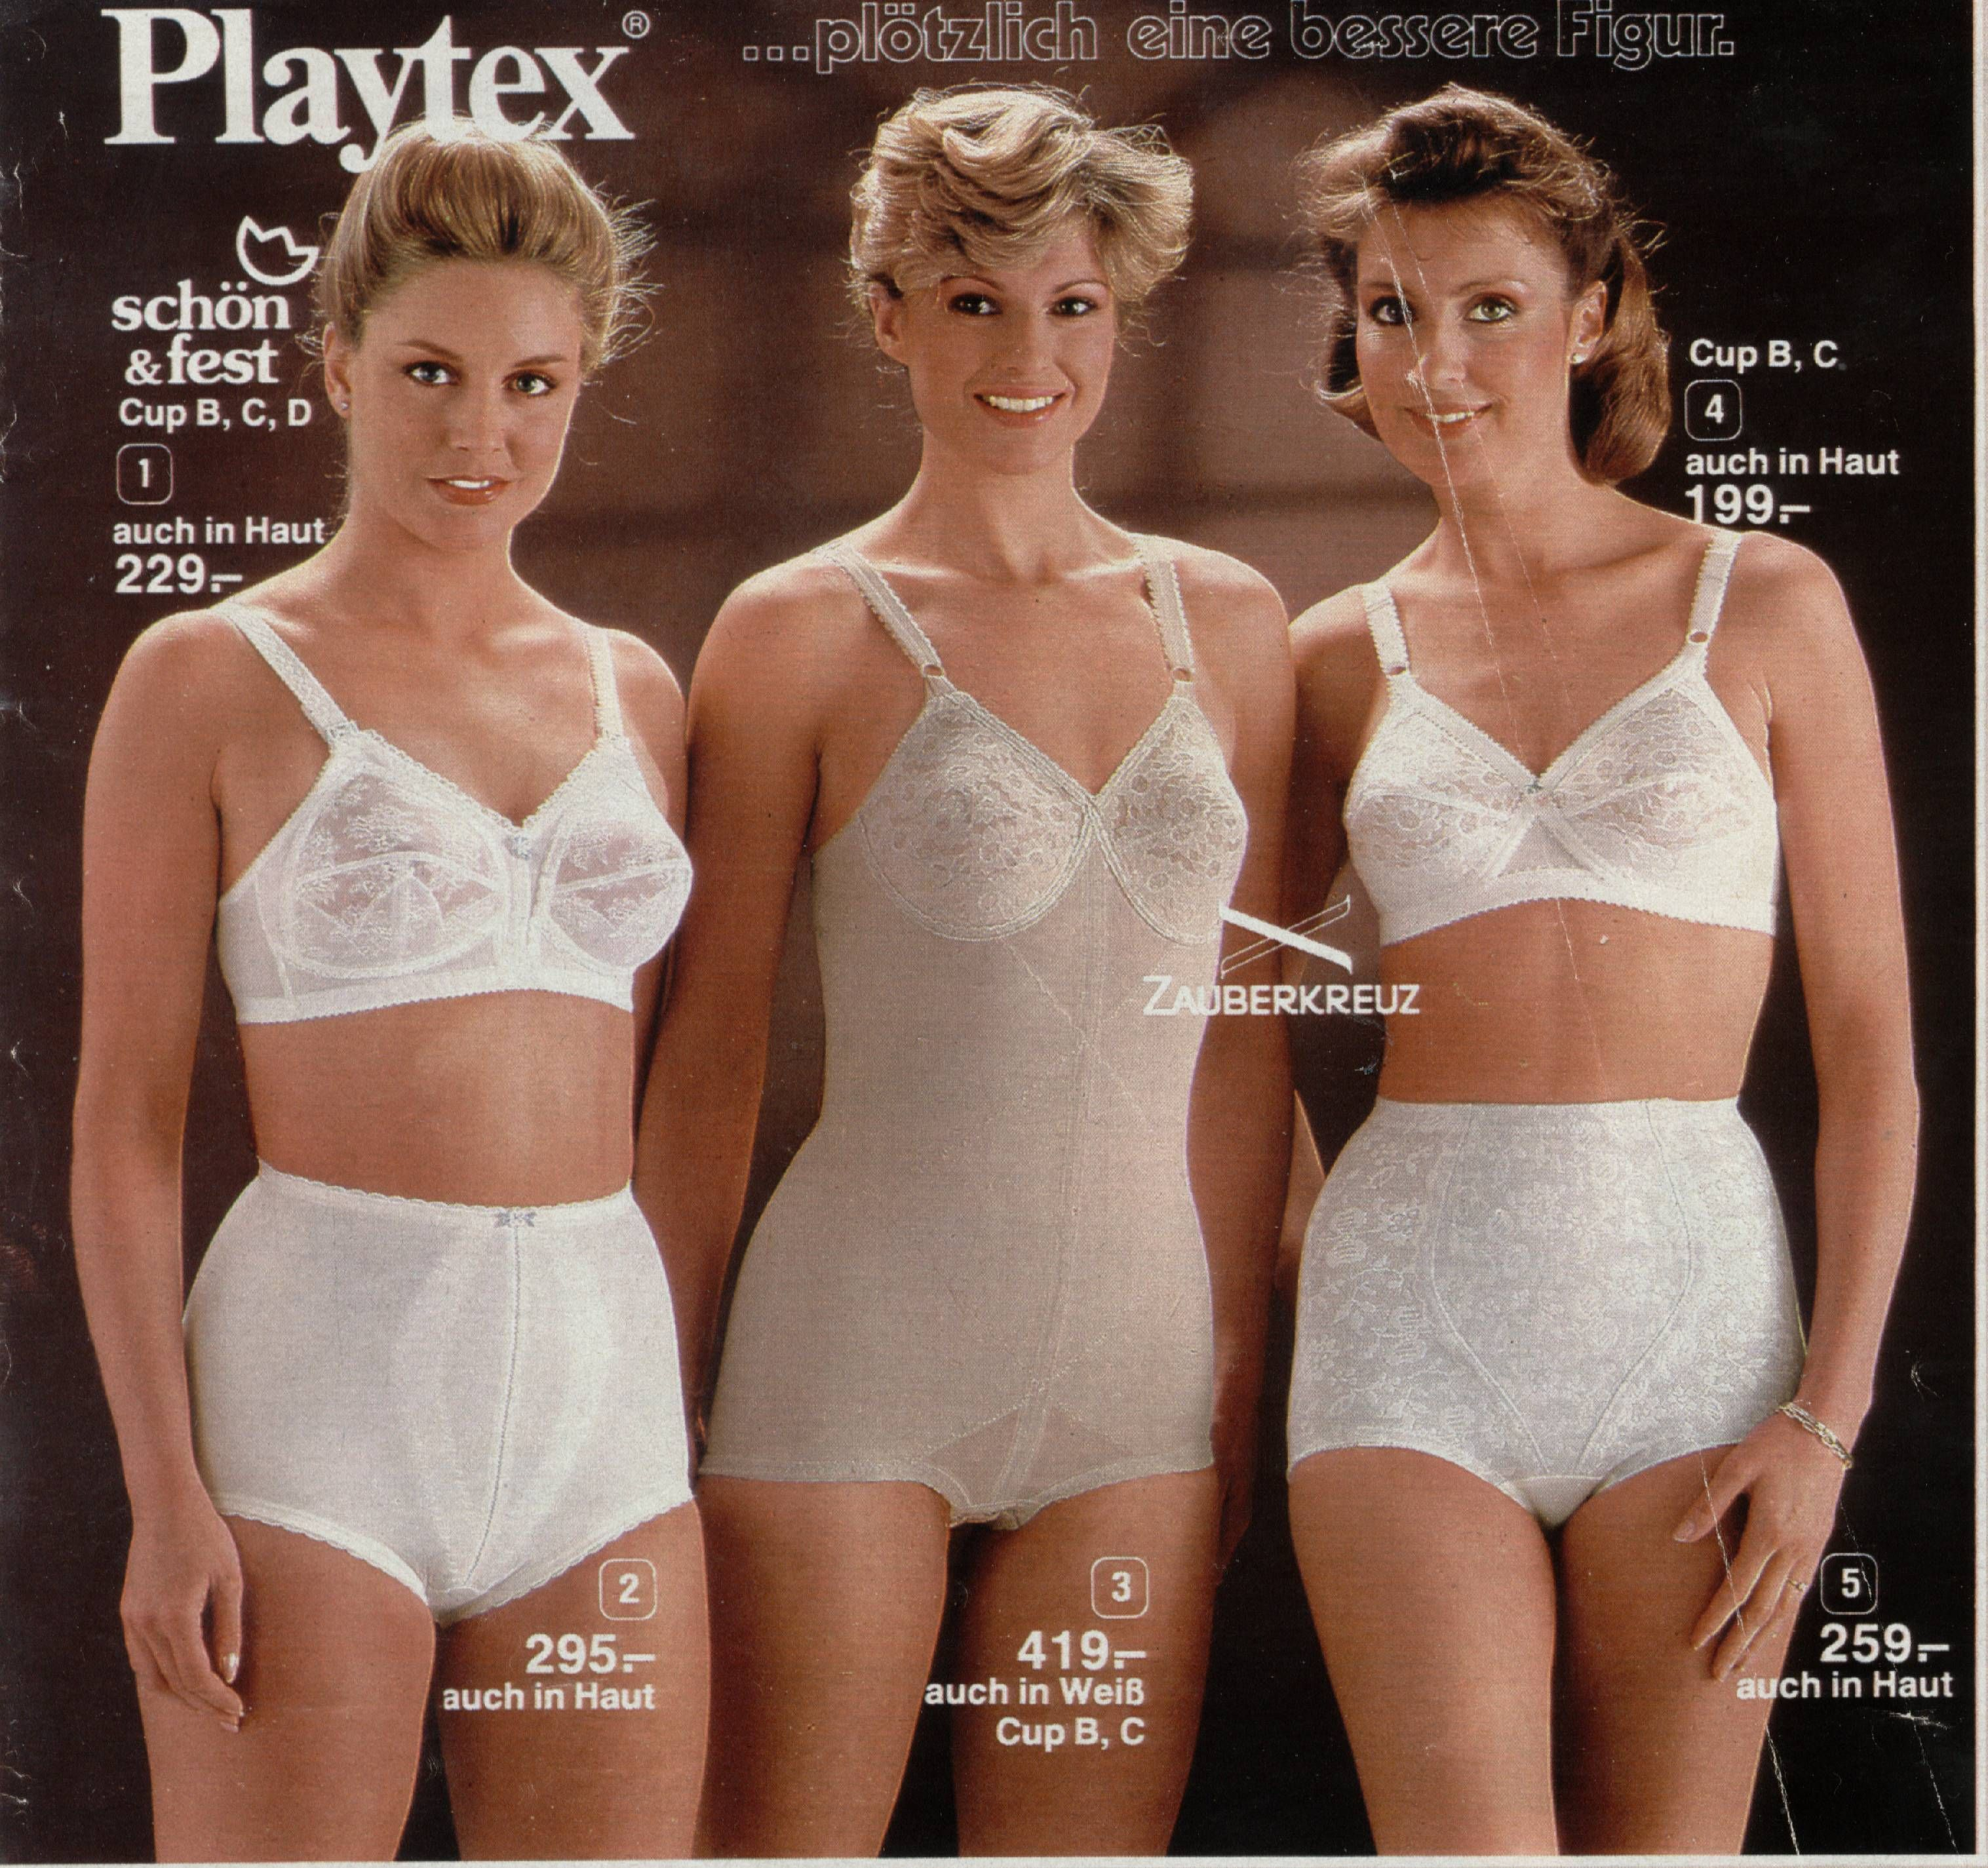 1981 Advert For Playtex Corselette And Panty Girdles Playtex Pinterest